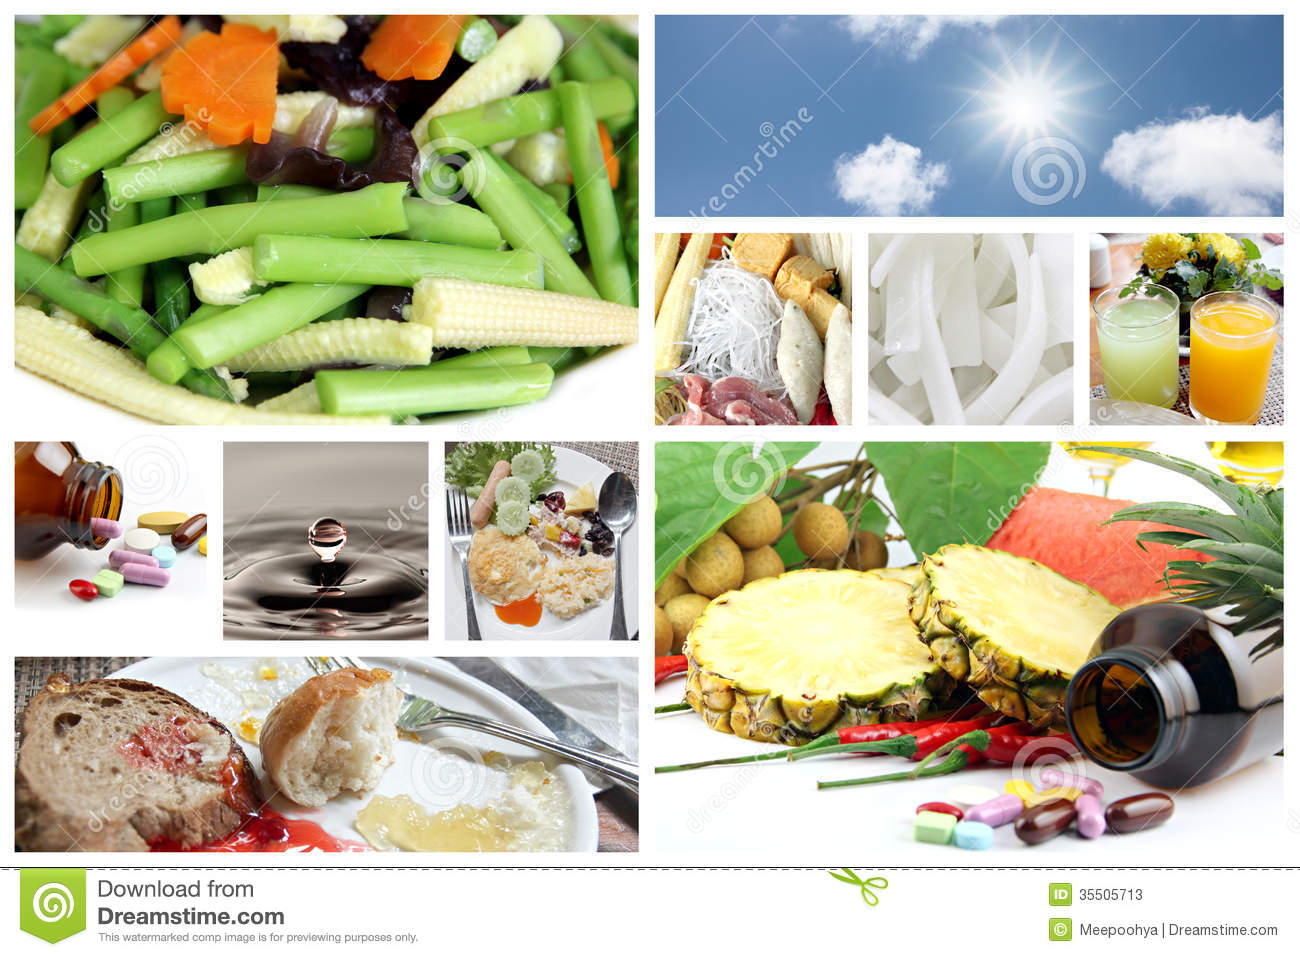 Food and good health - Royalty Free Stock Photo Download Concepts Of Food For Good Health